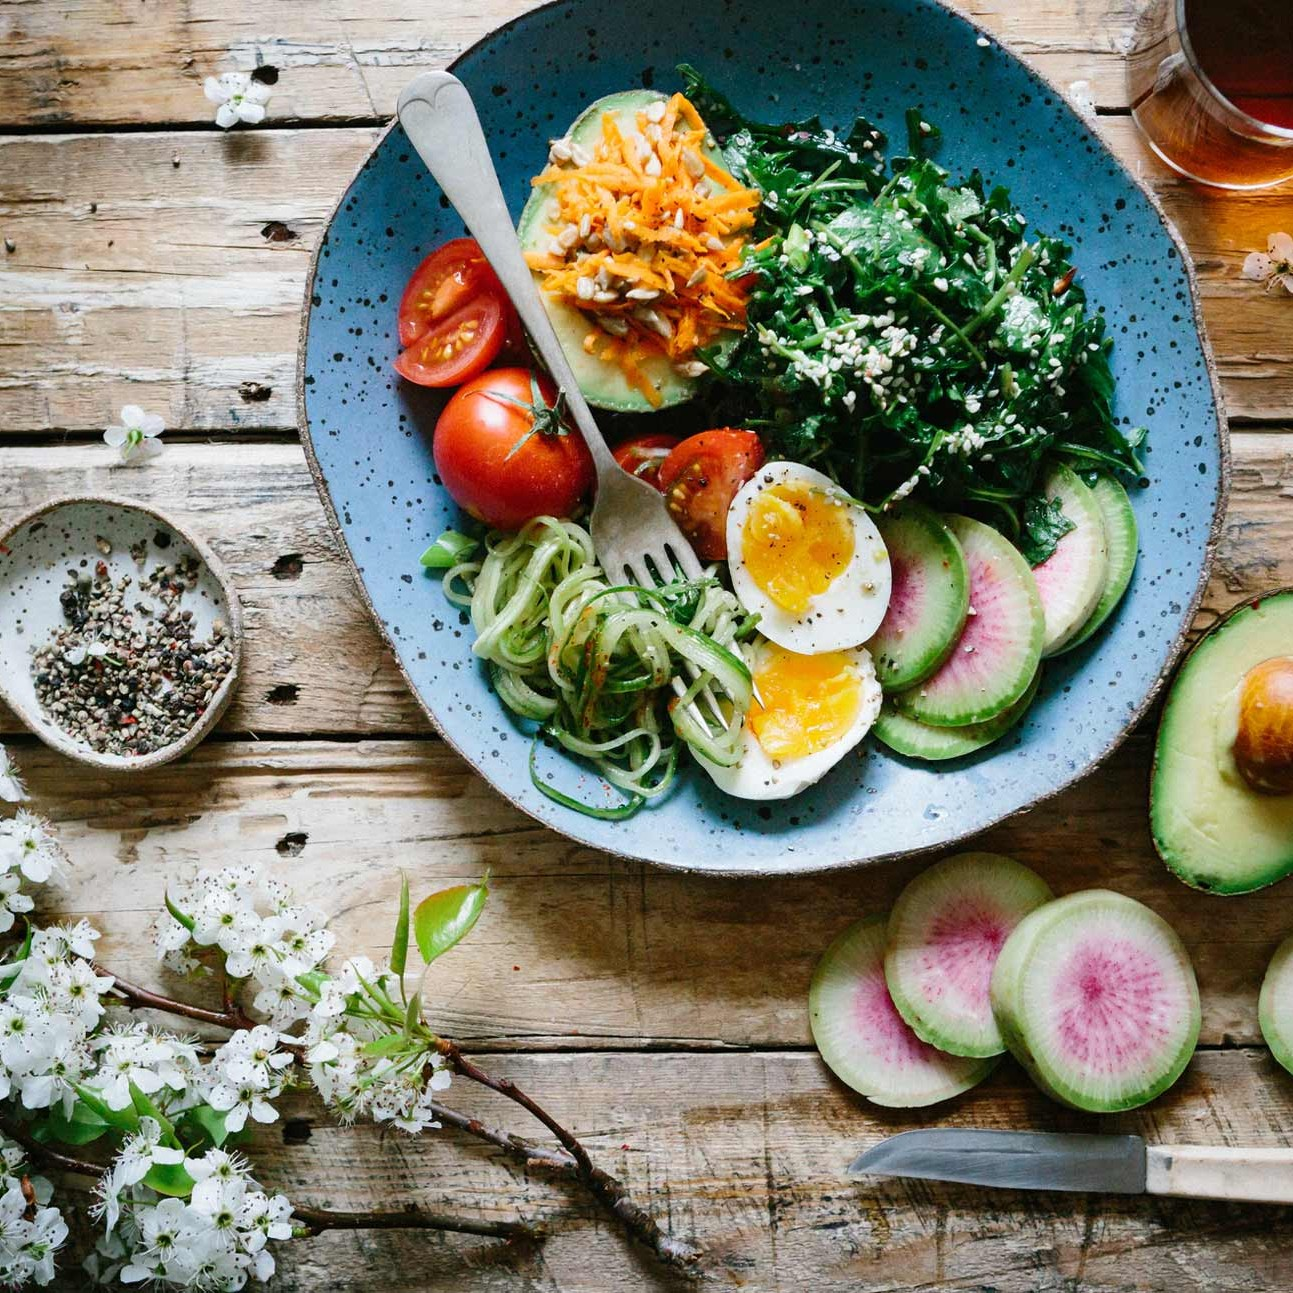 Food Quality, not Quantity, is Key to Health